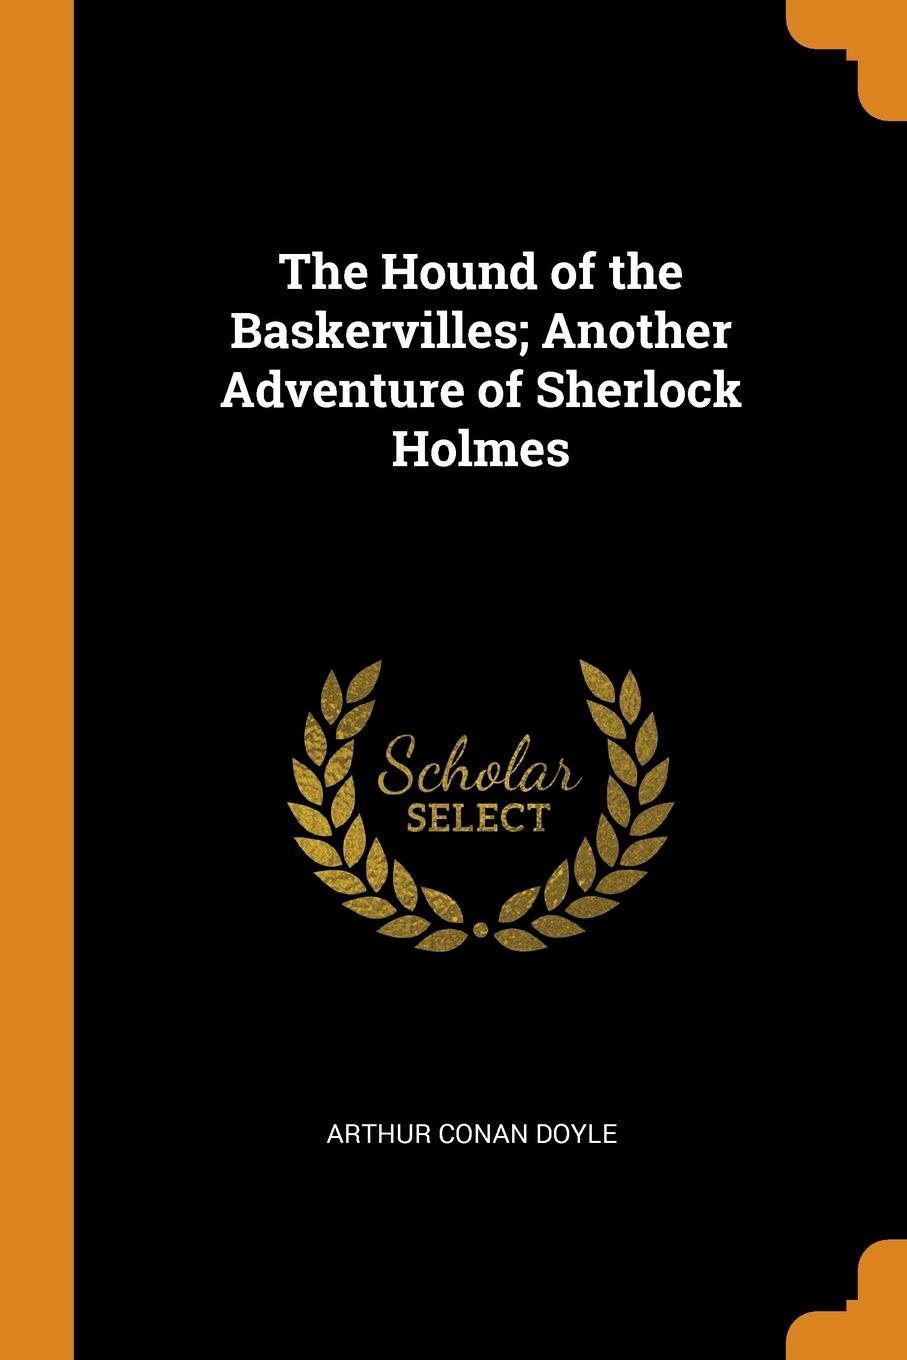 Arthur Conan Doyle The Hound of the Baskervilles; Another Adventure of Sherlock Holmes